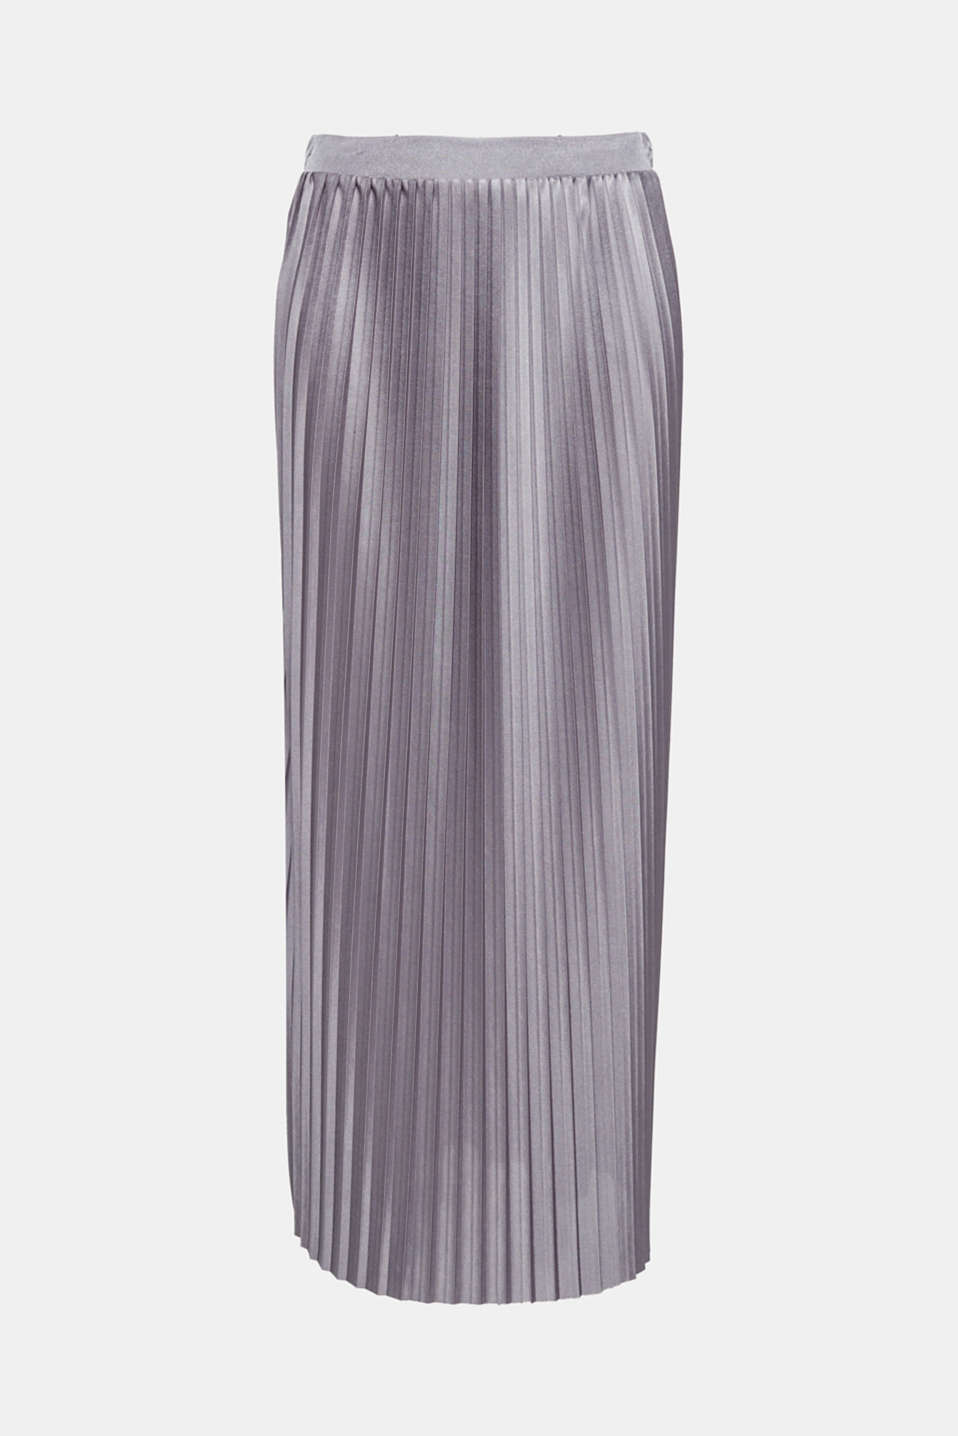 Chic and stylish yet oh so simple, this maxi skirt features fine pleats, an elasticated waistband and an elegant, shimmering finish!